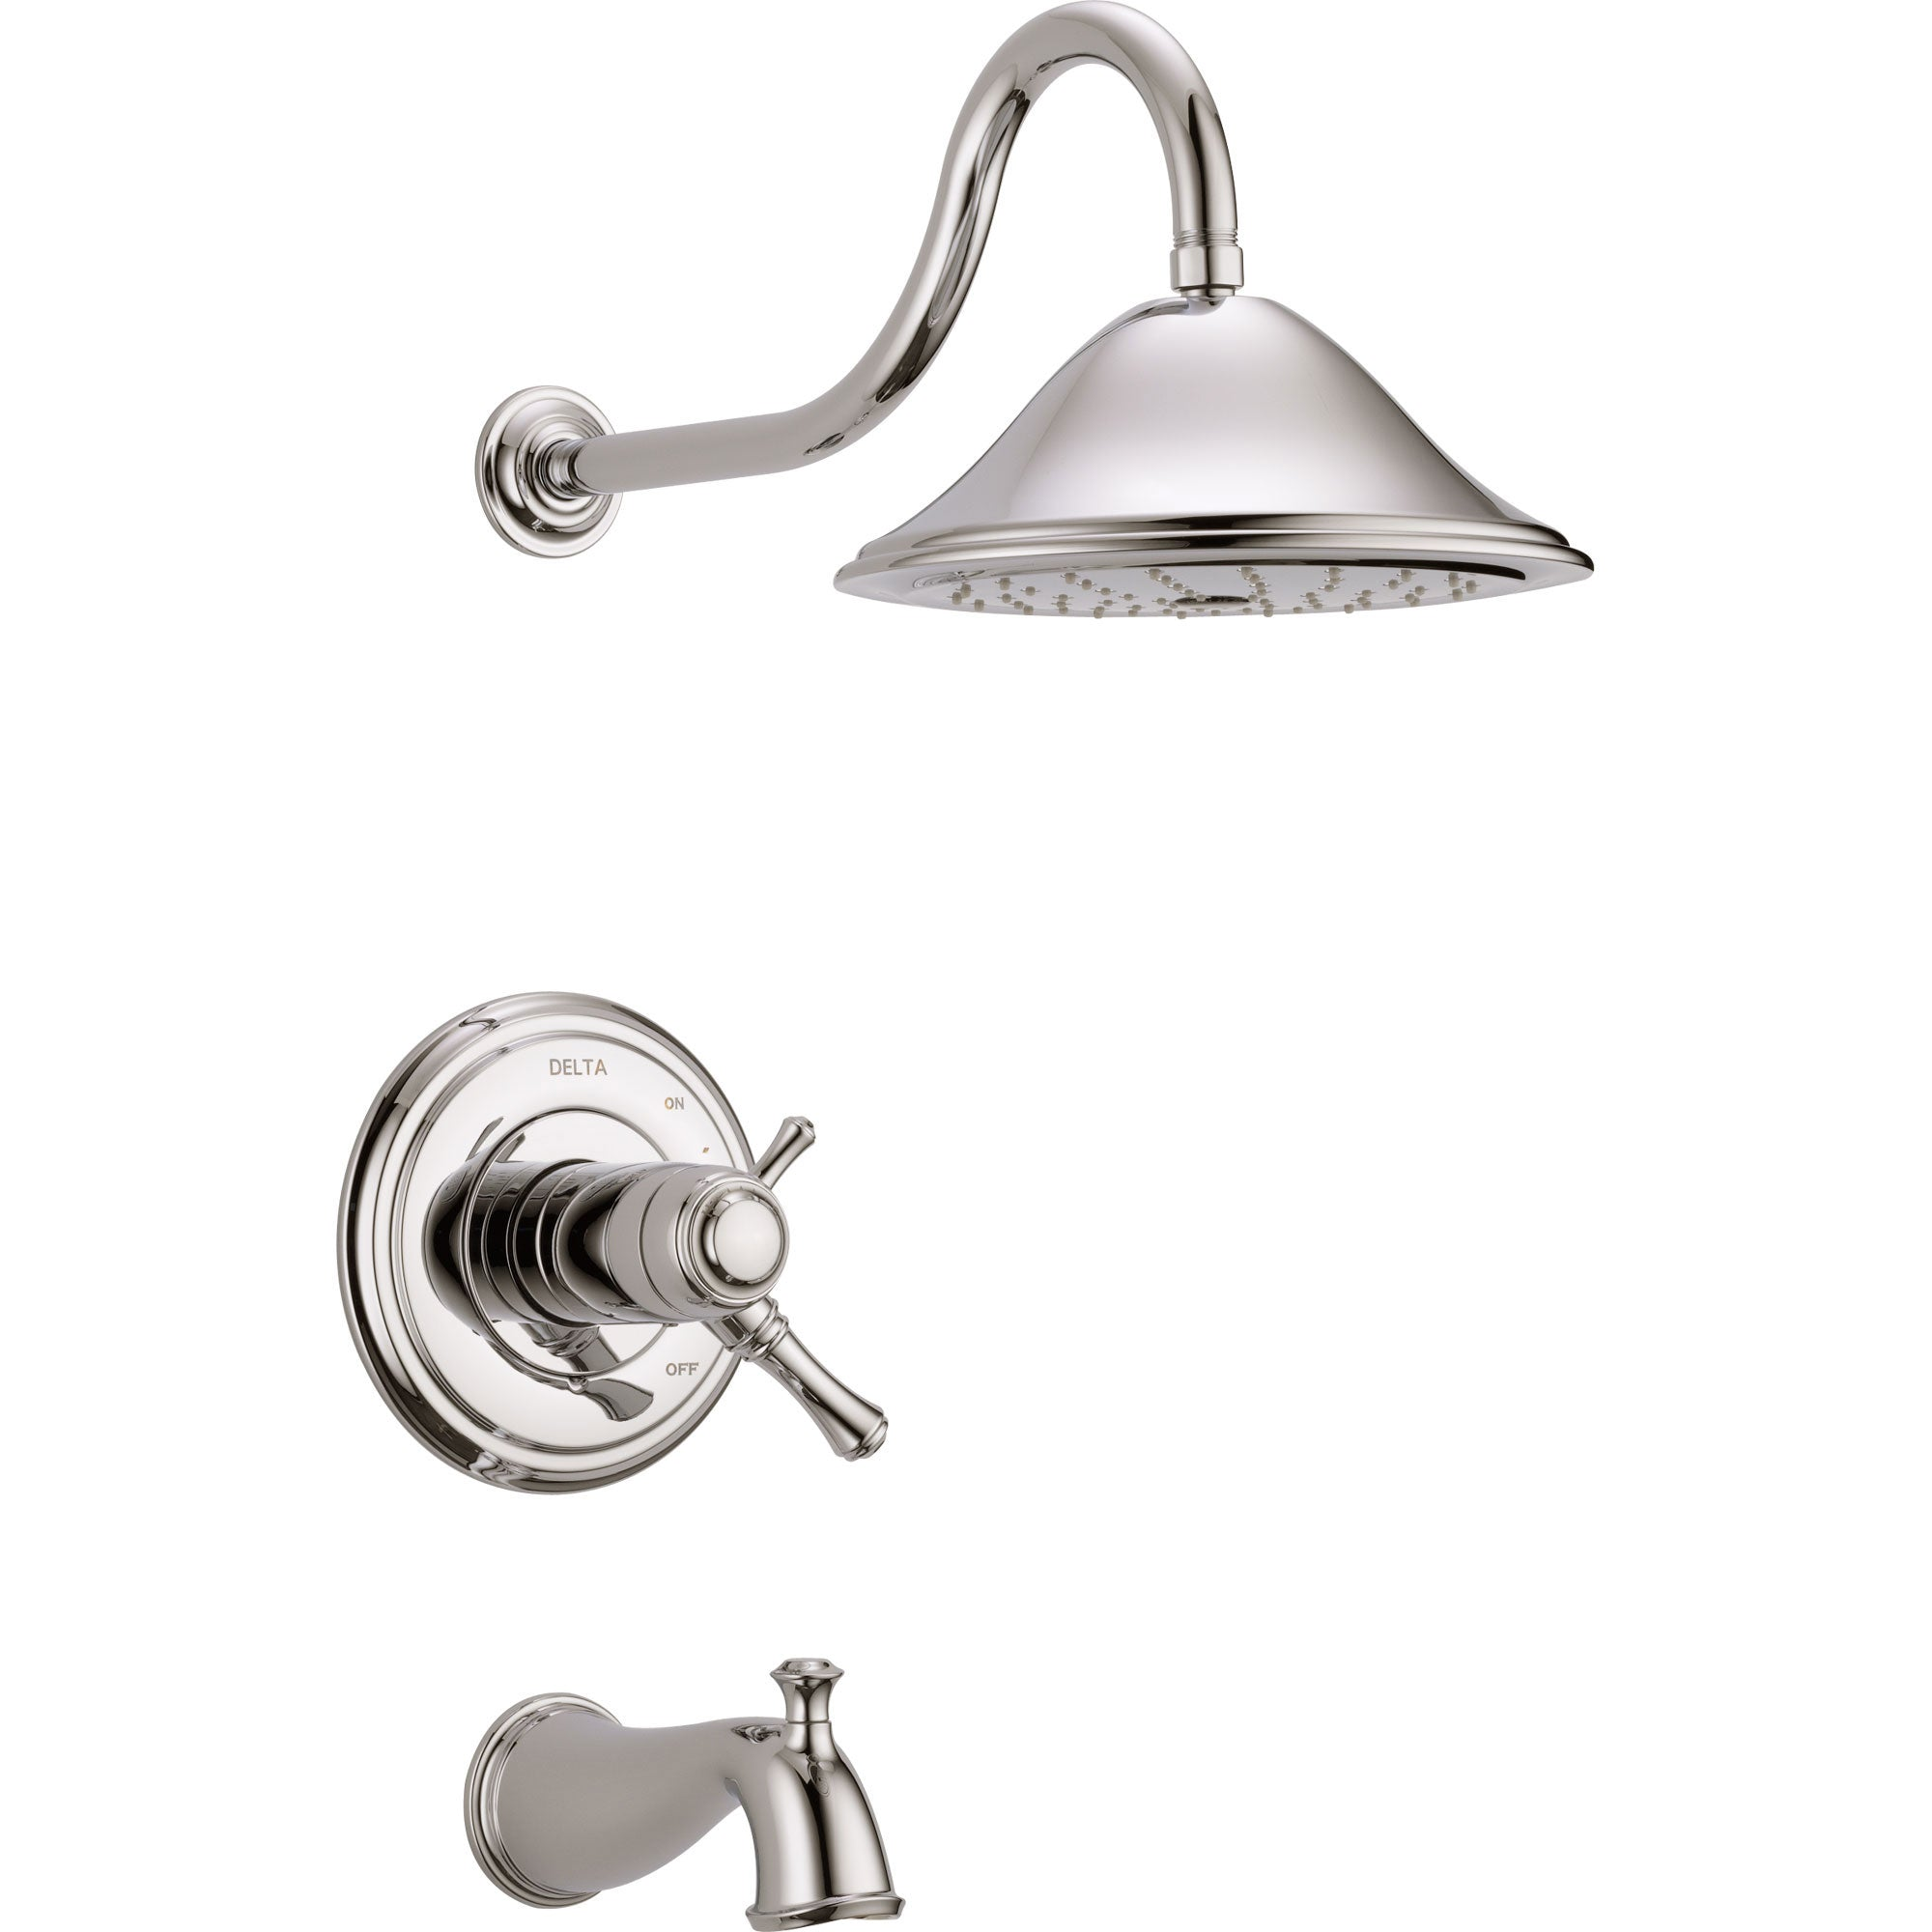 Delta Cassidy Polished Nickel Dual Thermostatic Large Tub/Shower Trim Kit 584227